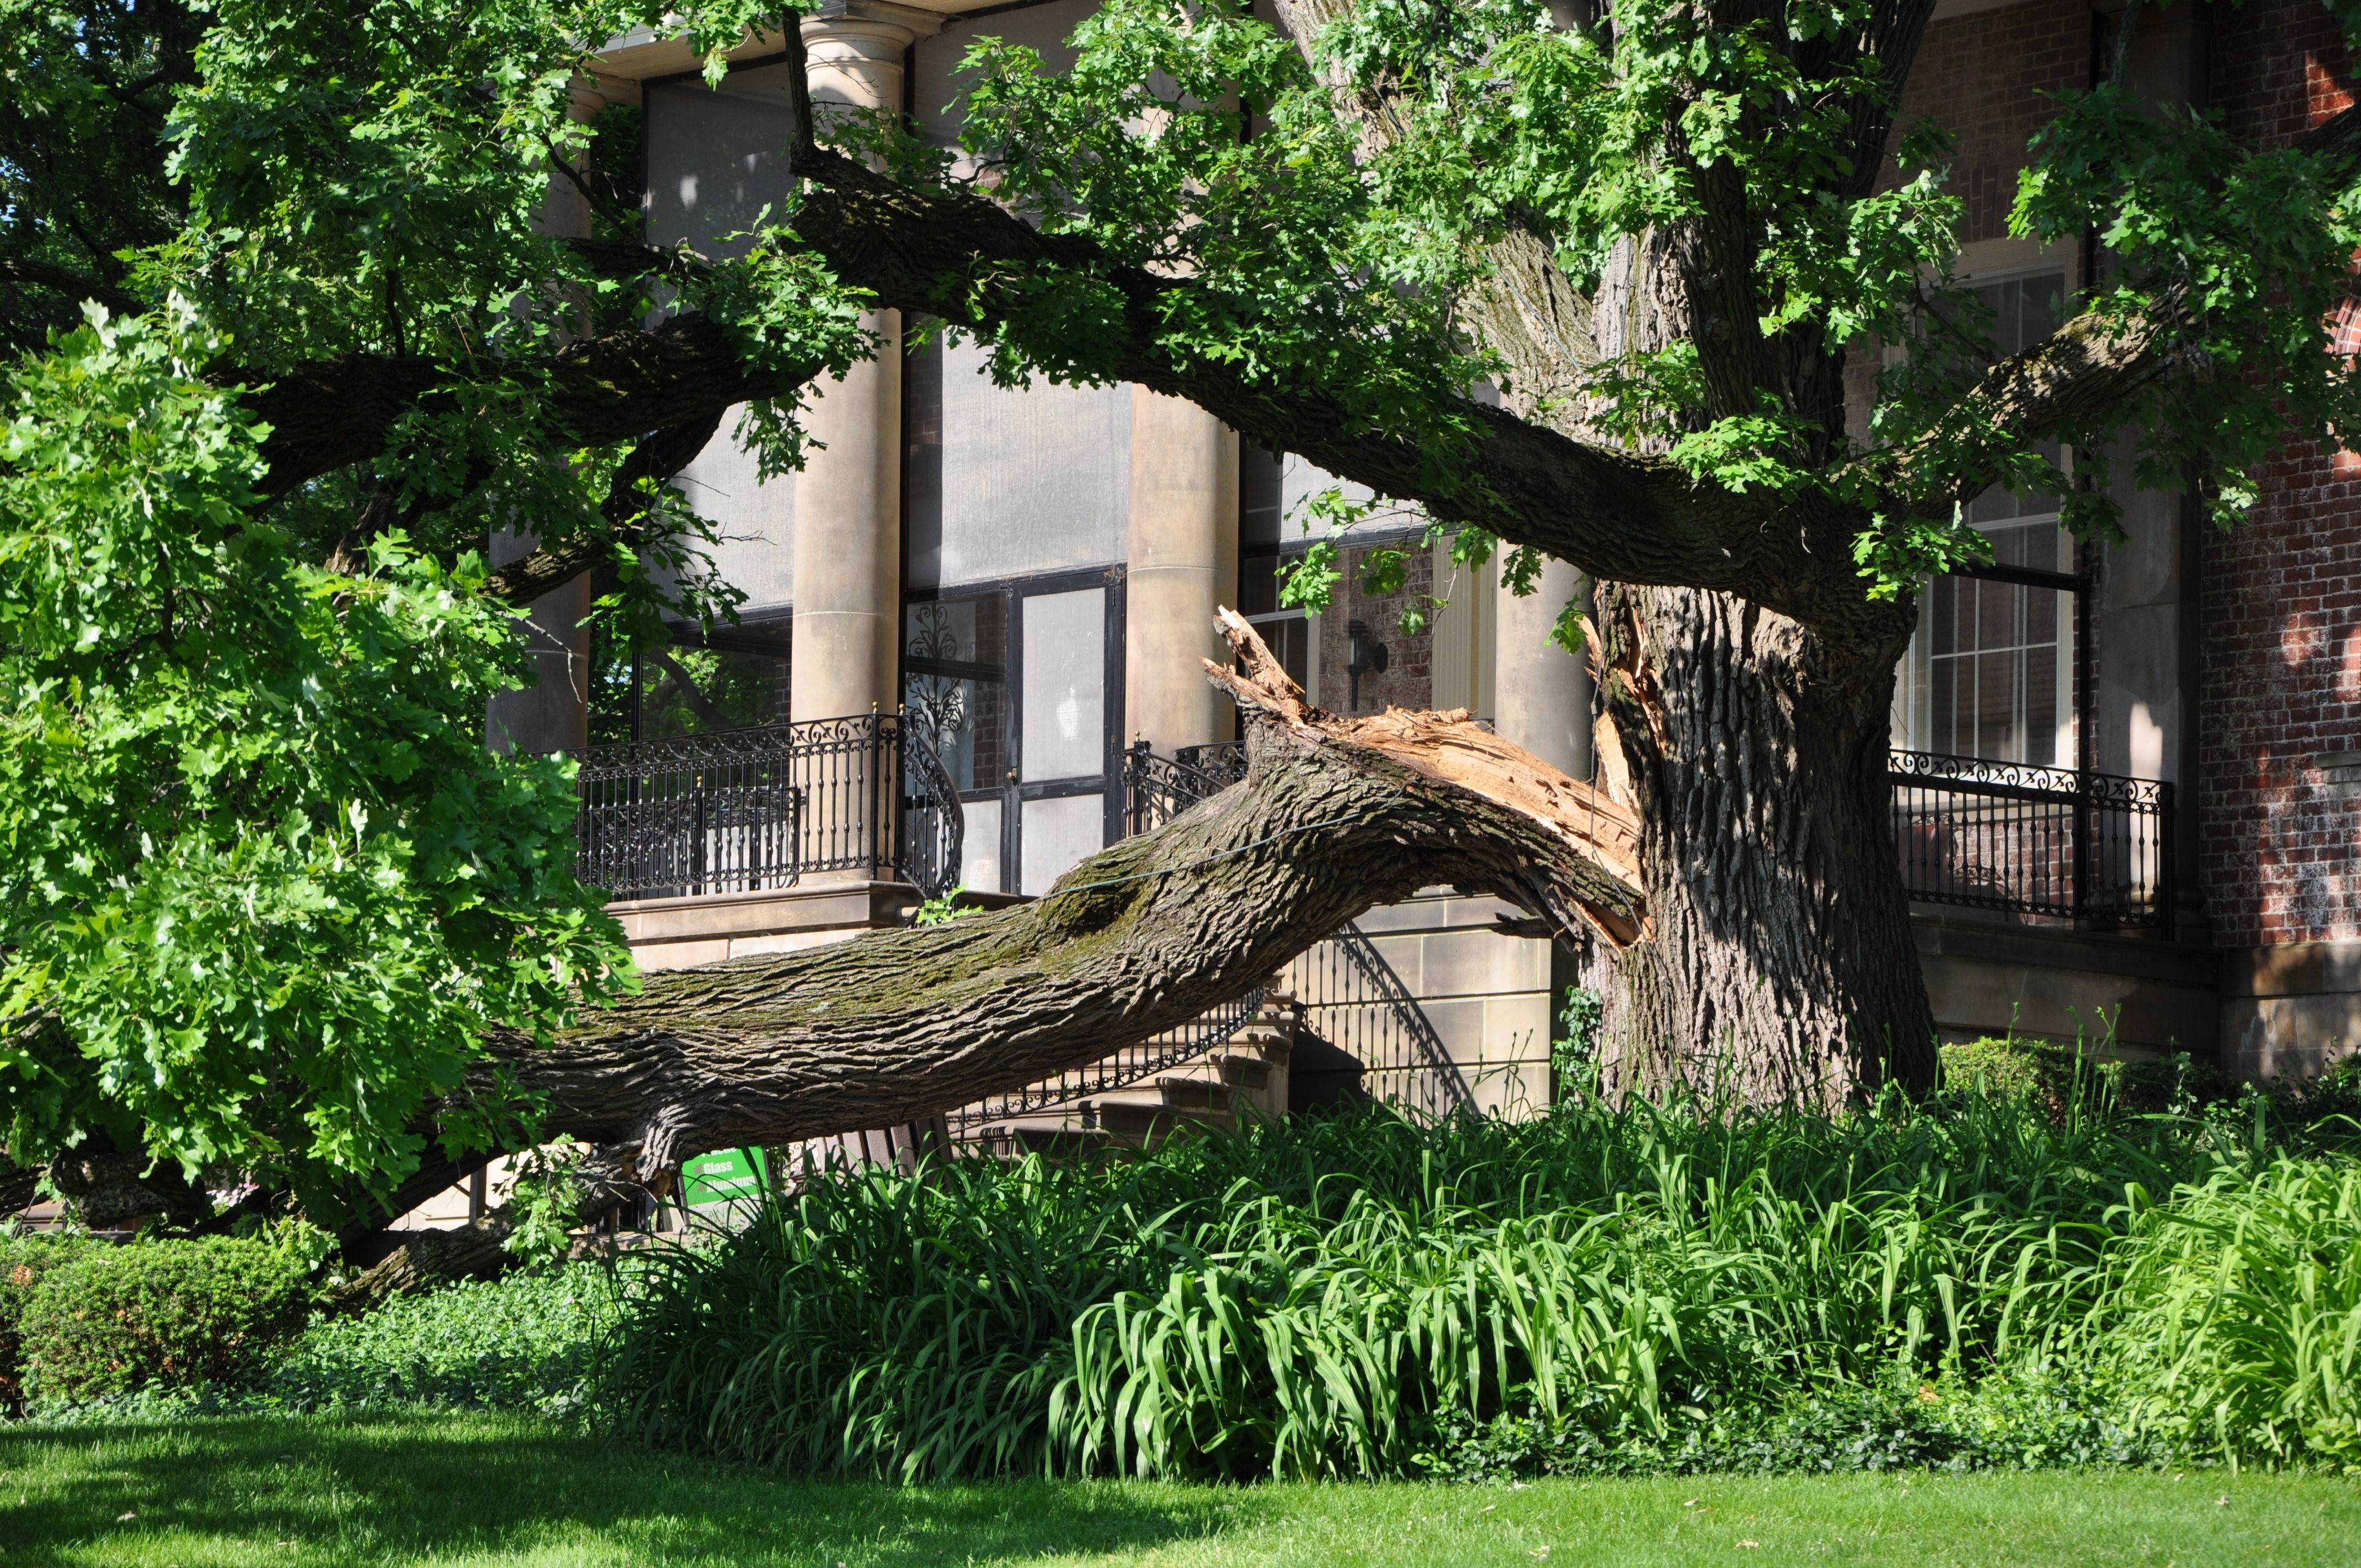 An 83-year-old Crete woman died Tuesday from multiple injuries caused by this fallen tree branch at Cantigny Park in Wheaton. Mildred Hetmanski and two other guests were hit by the branch June 8.